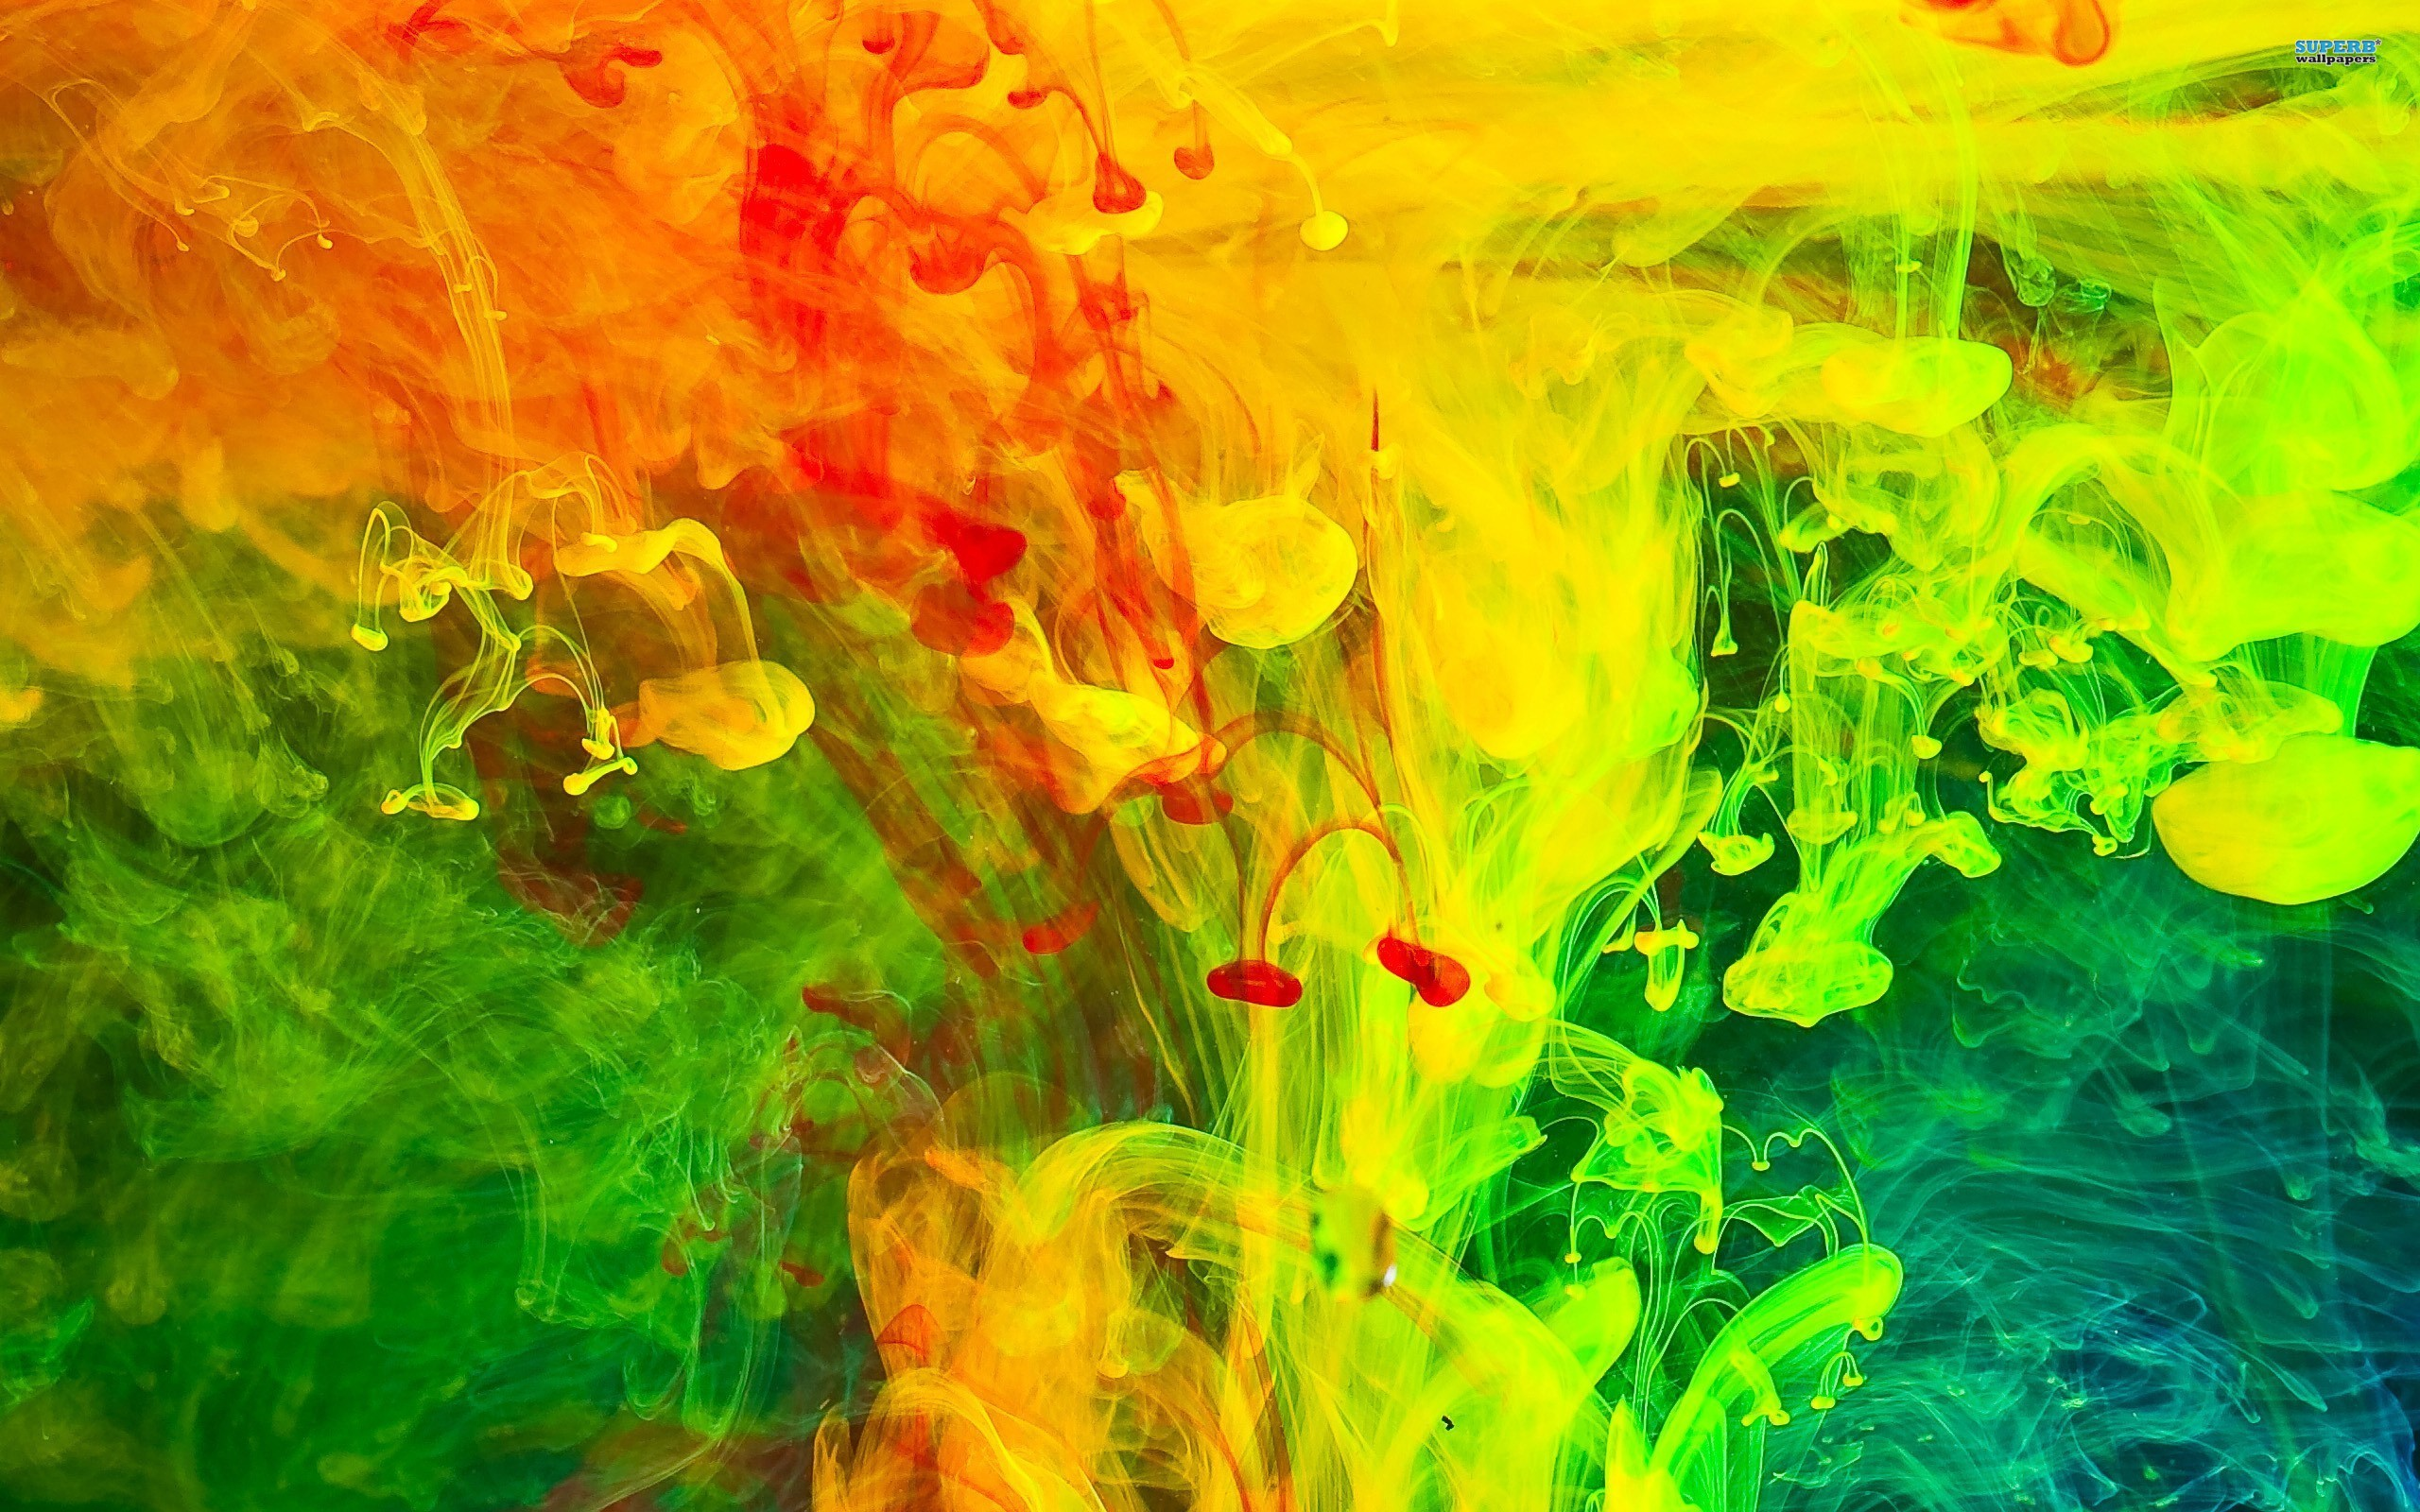 Painting Background Wallpaper